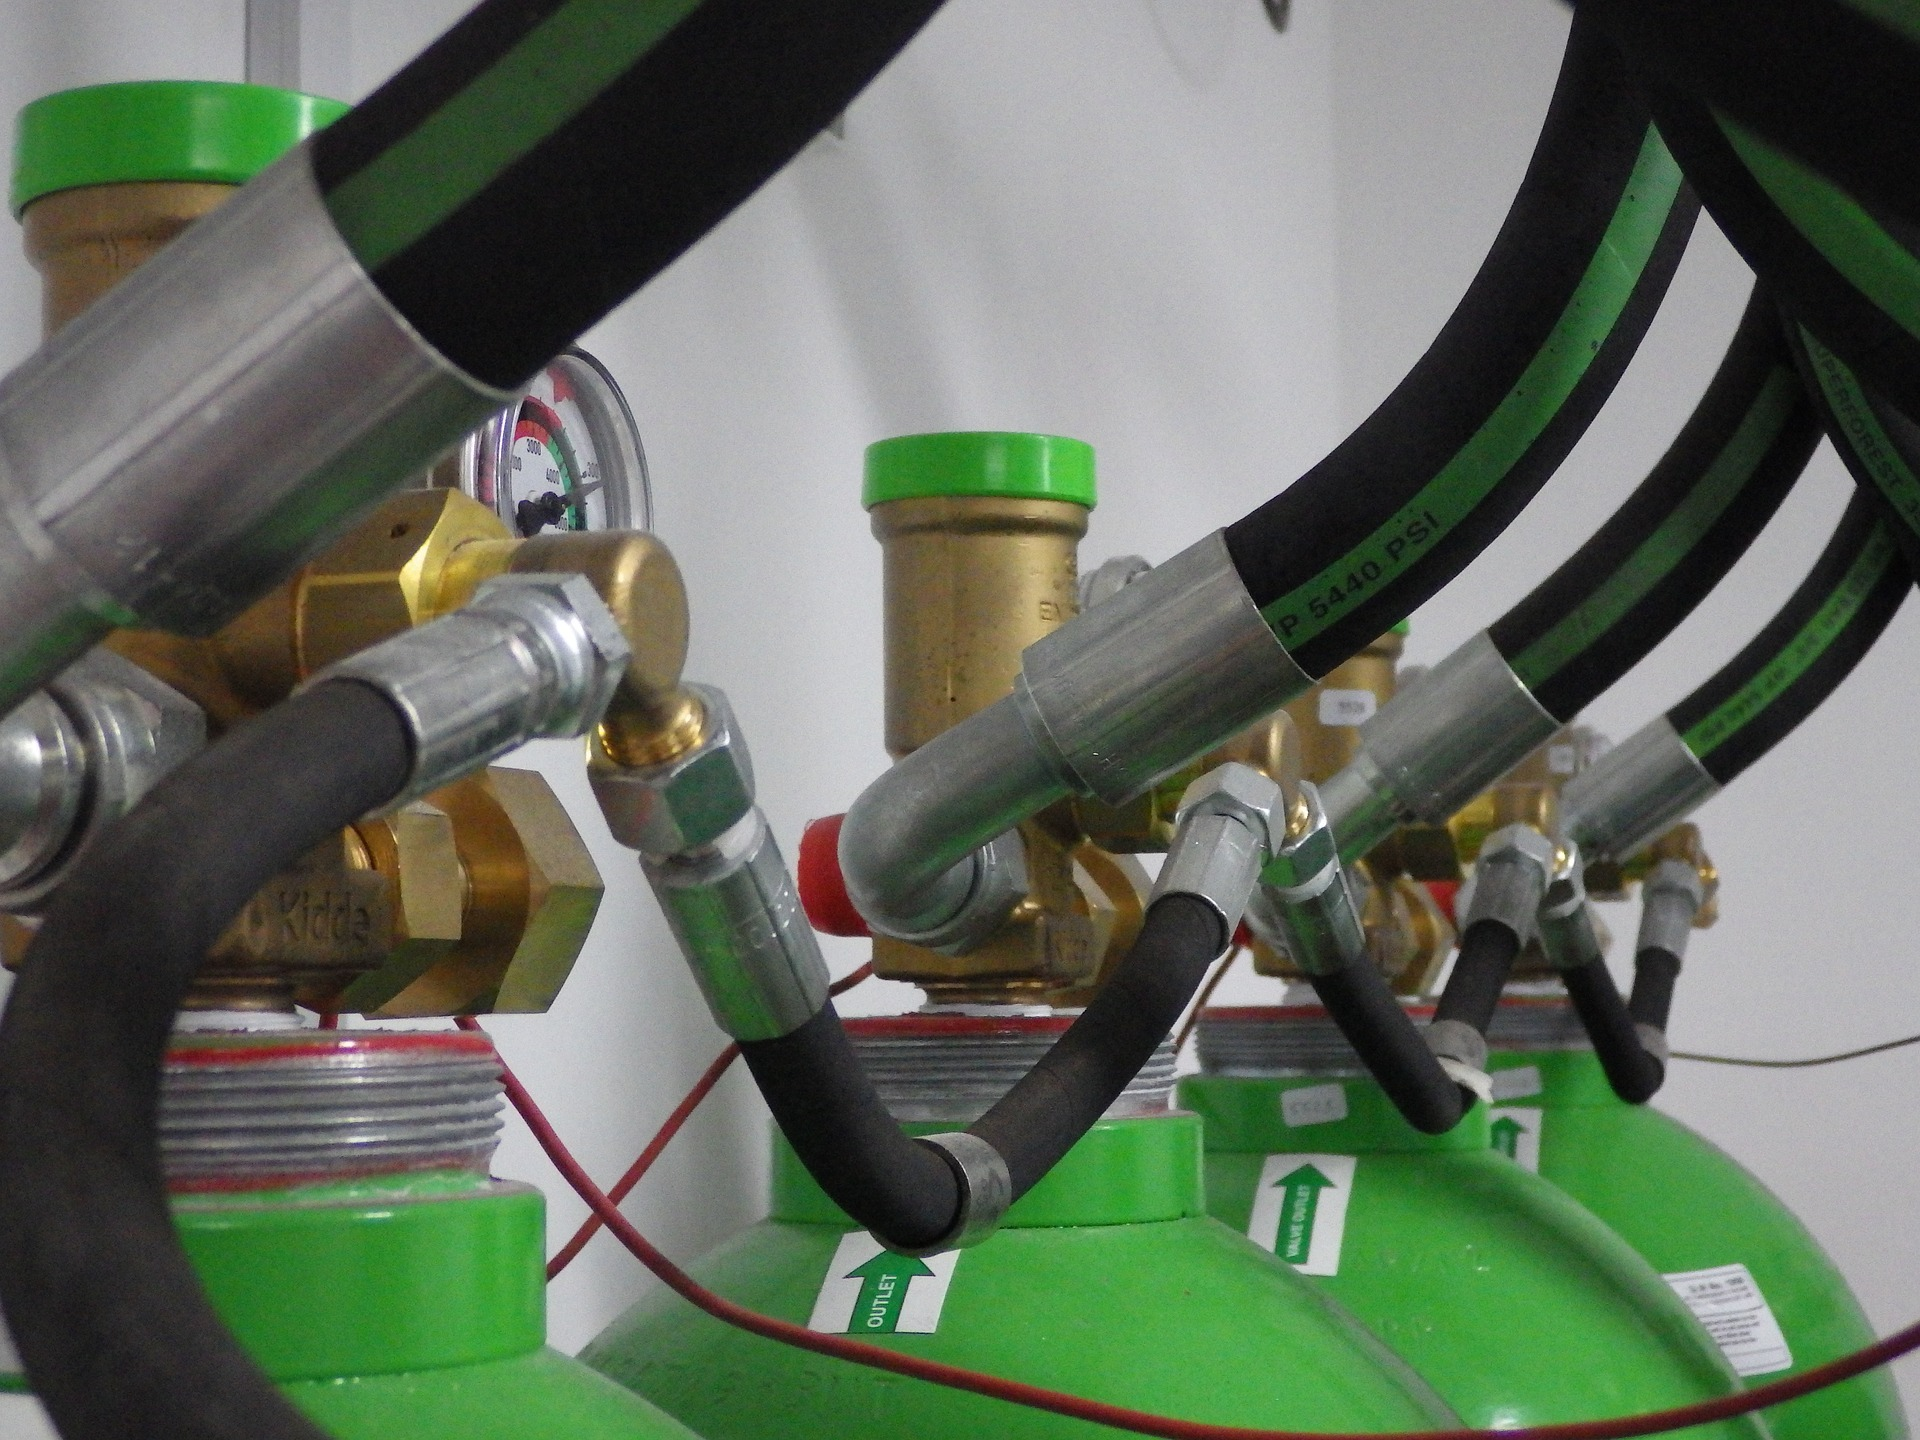 4 connected gas tanks leading towards the camera on stable pressure